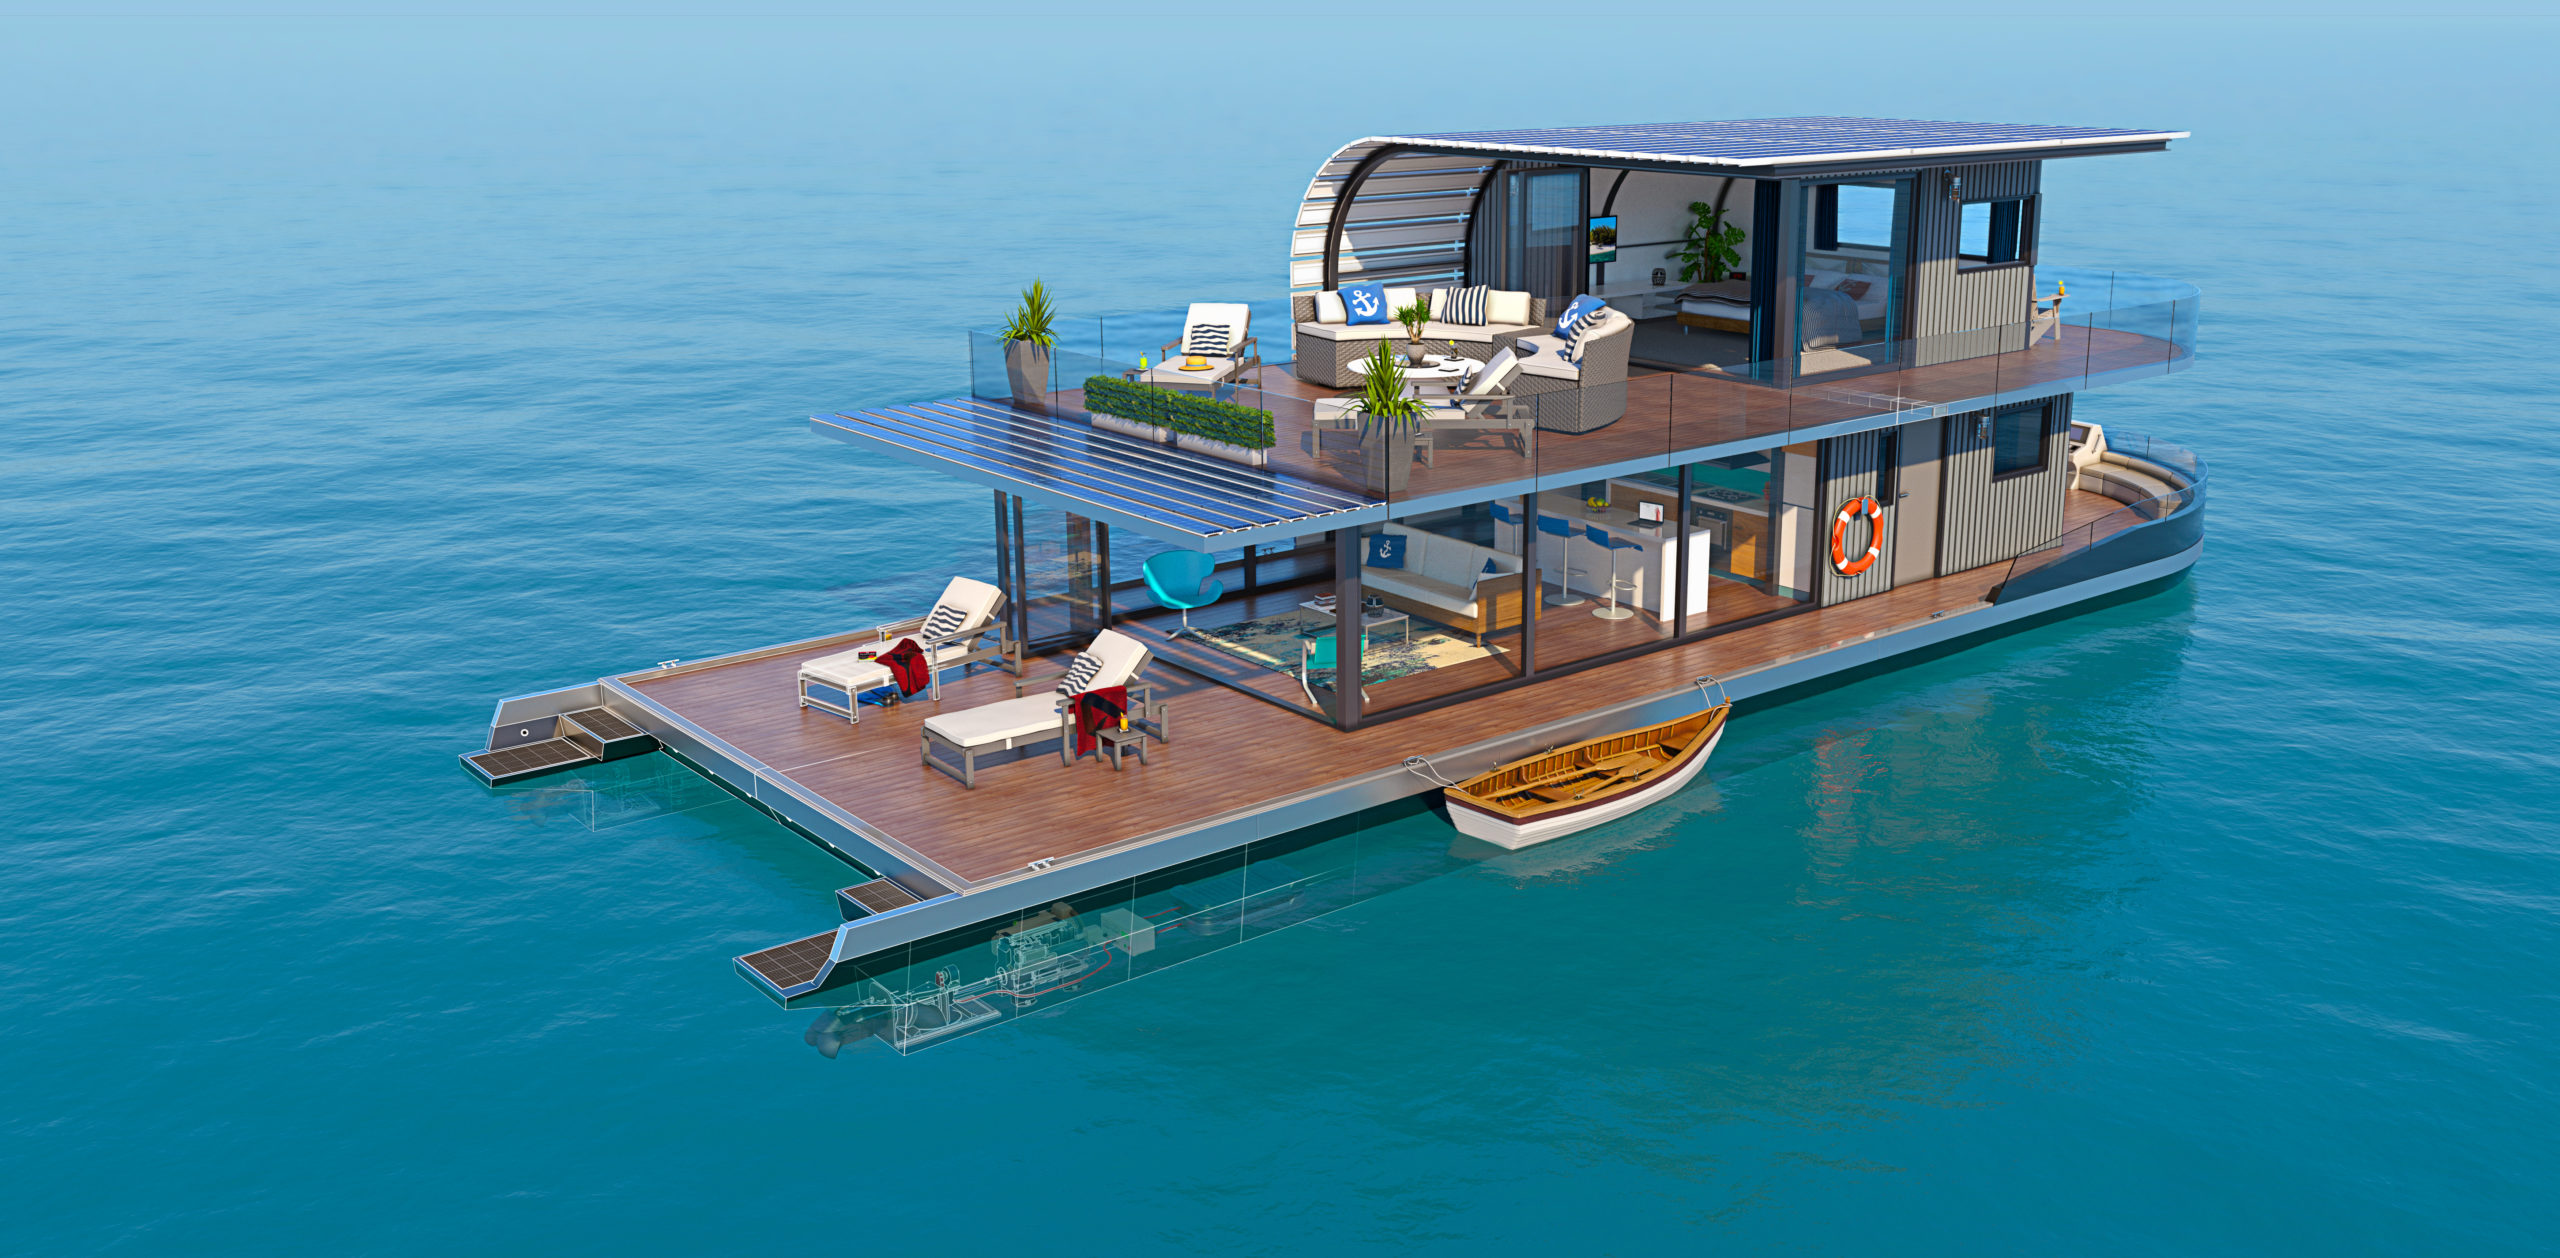 AutoCAD2022 Houseboat Stern scaled